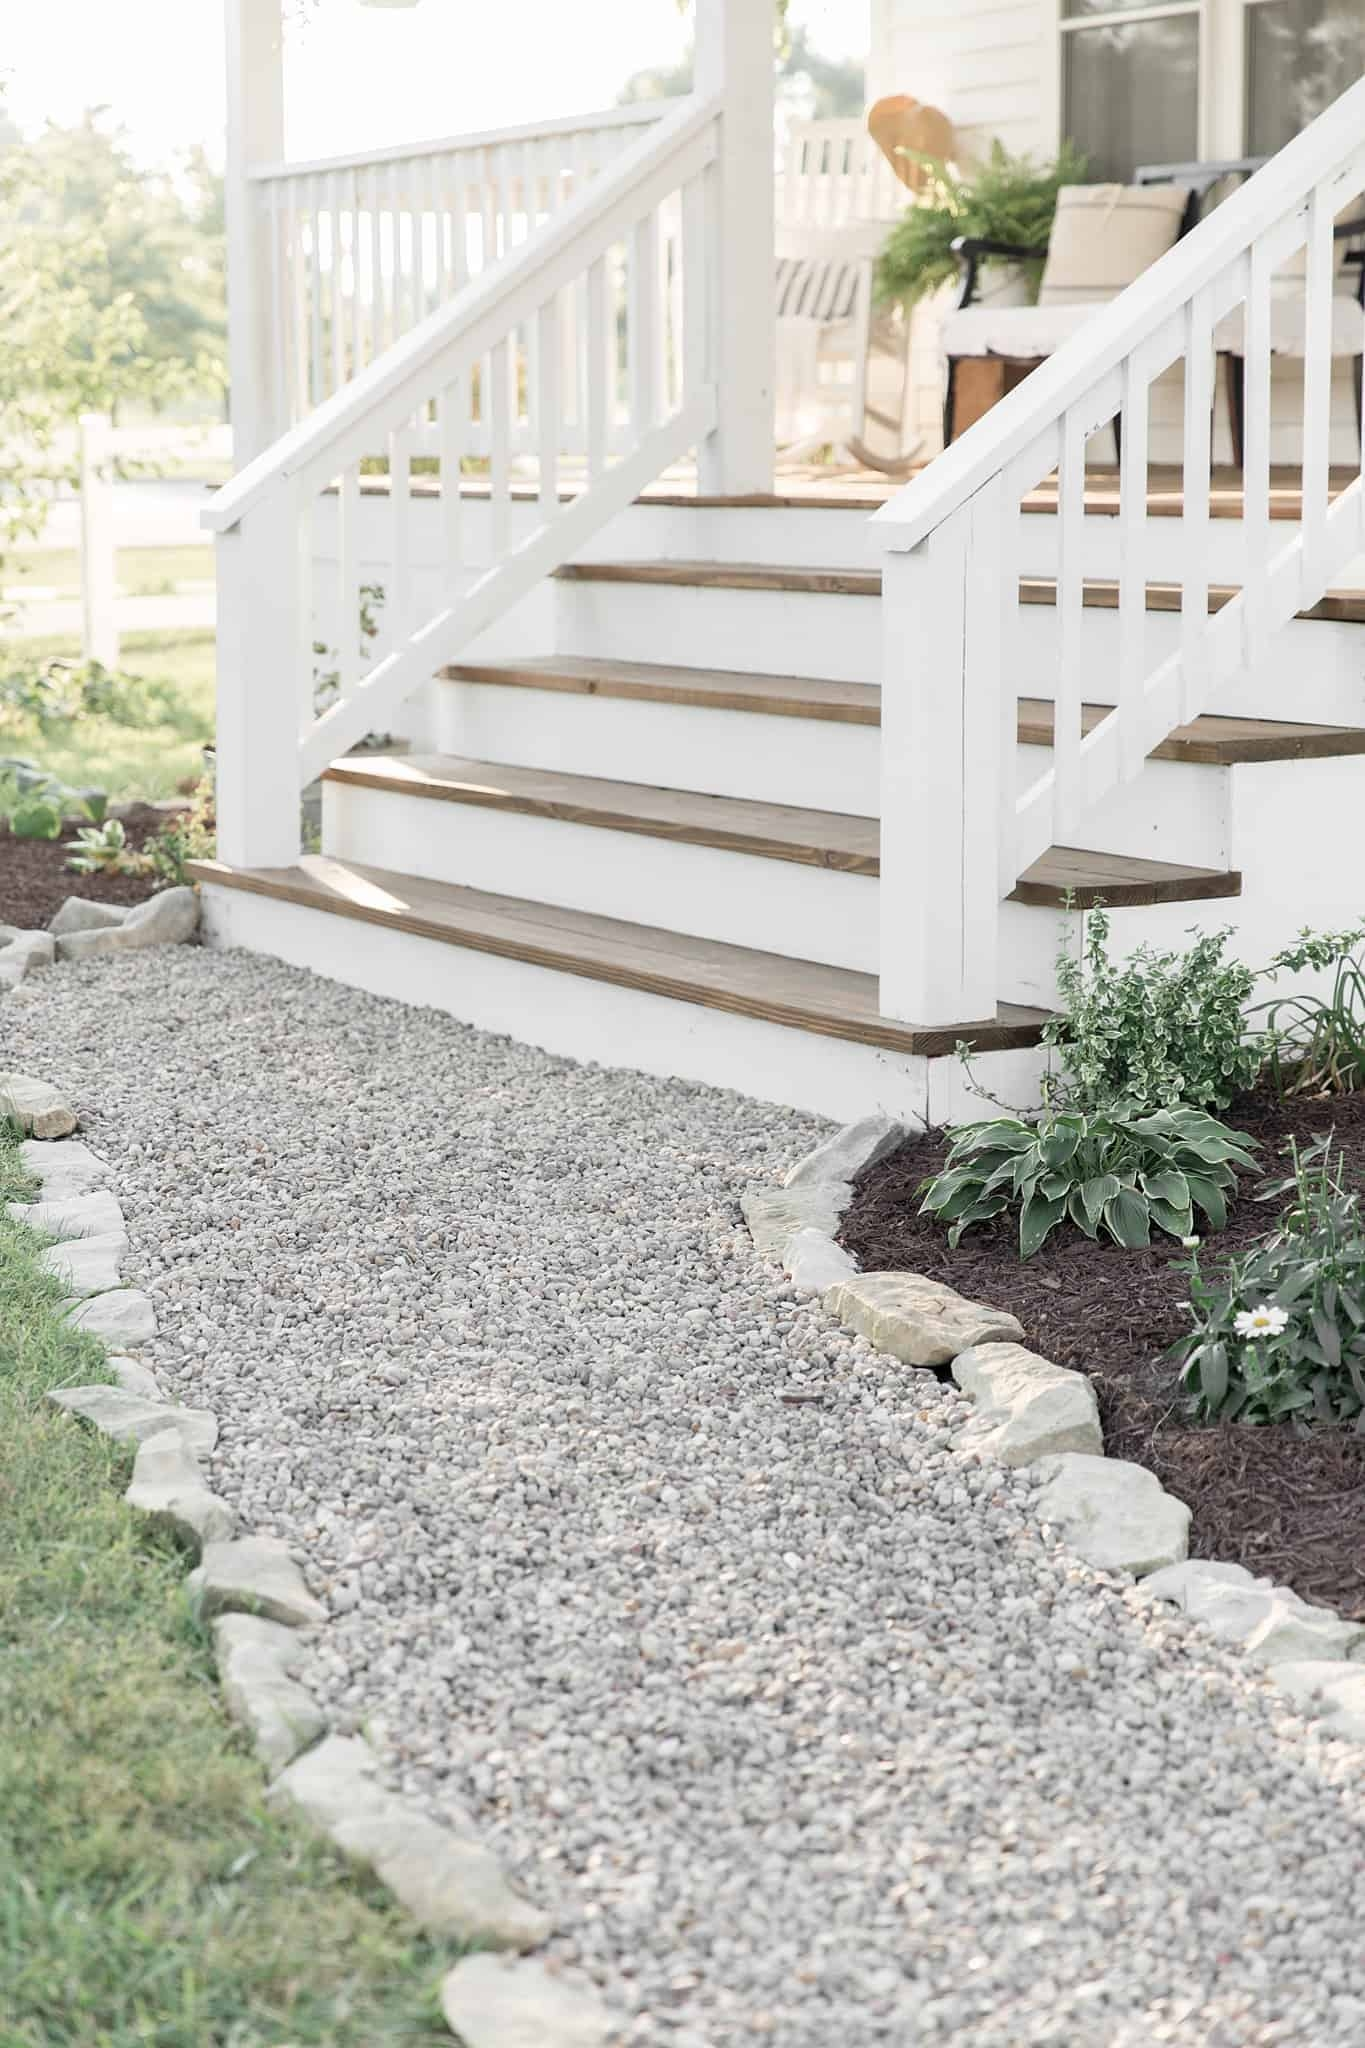 How To Cover Concrete Steps With Wood Farmhouse On Boone | Attaching Wood To Concrete Steps | Composite Decking | Handrail | Staircase | Screws | Deck Stairs